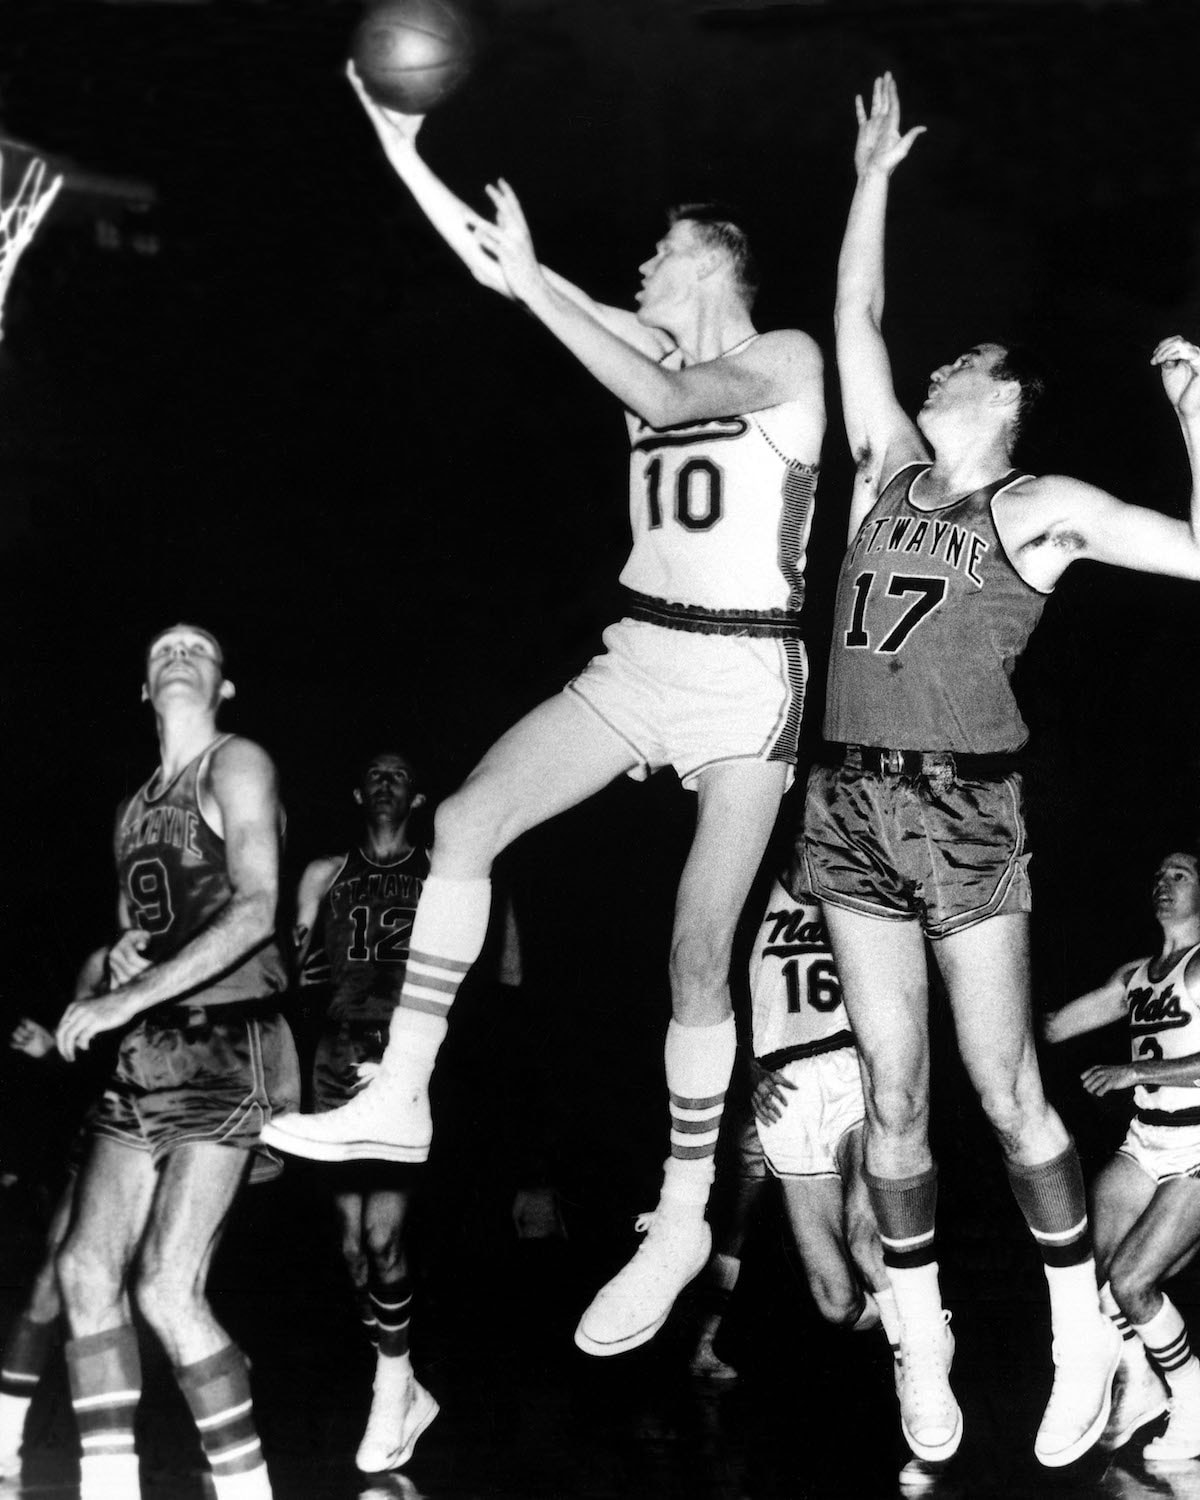 1960: Johnny Red Kerr #10 of the Syracuse Nationals drives to the basket for a layup against Ft. Wayne during an NBA game in Syracuse, New York in 1960.